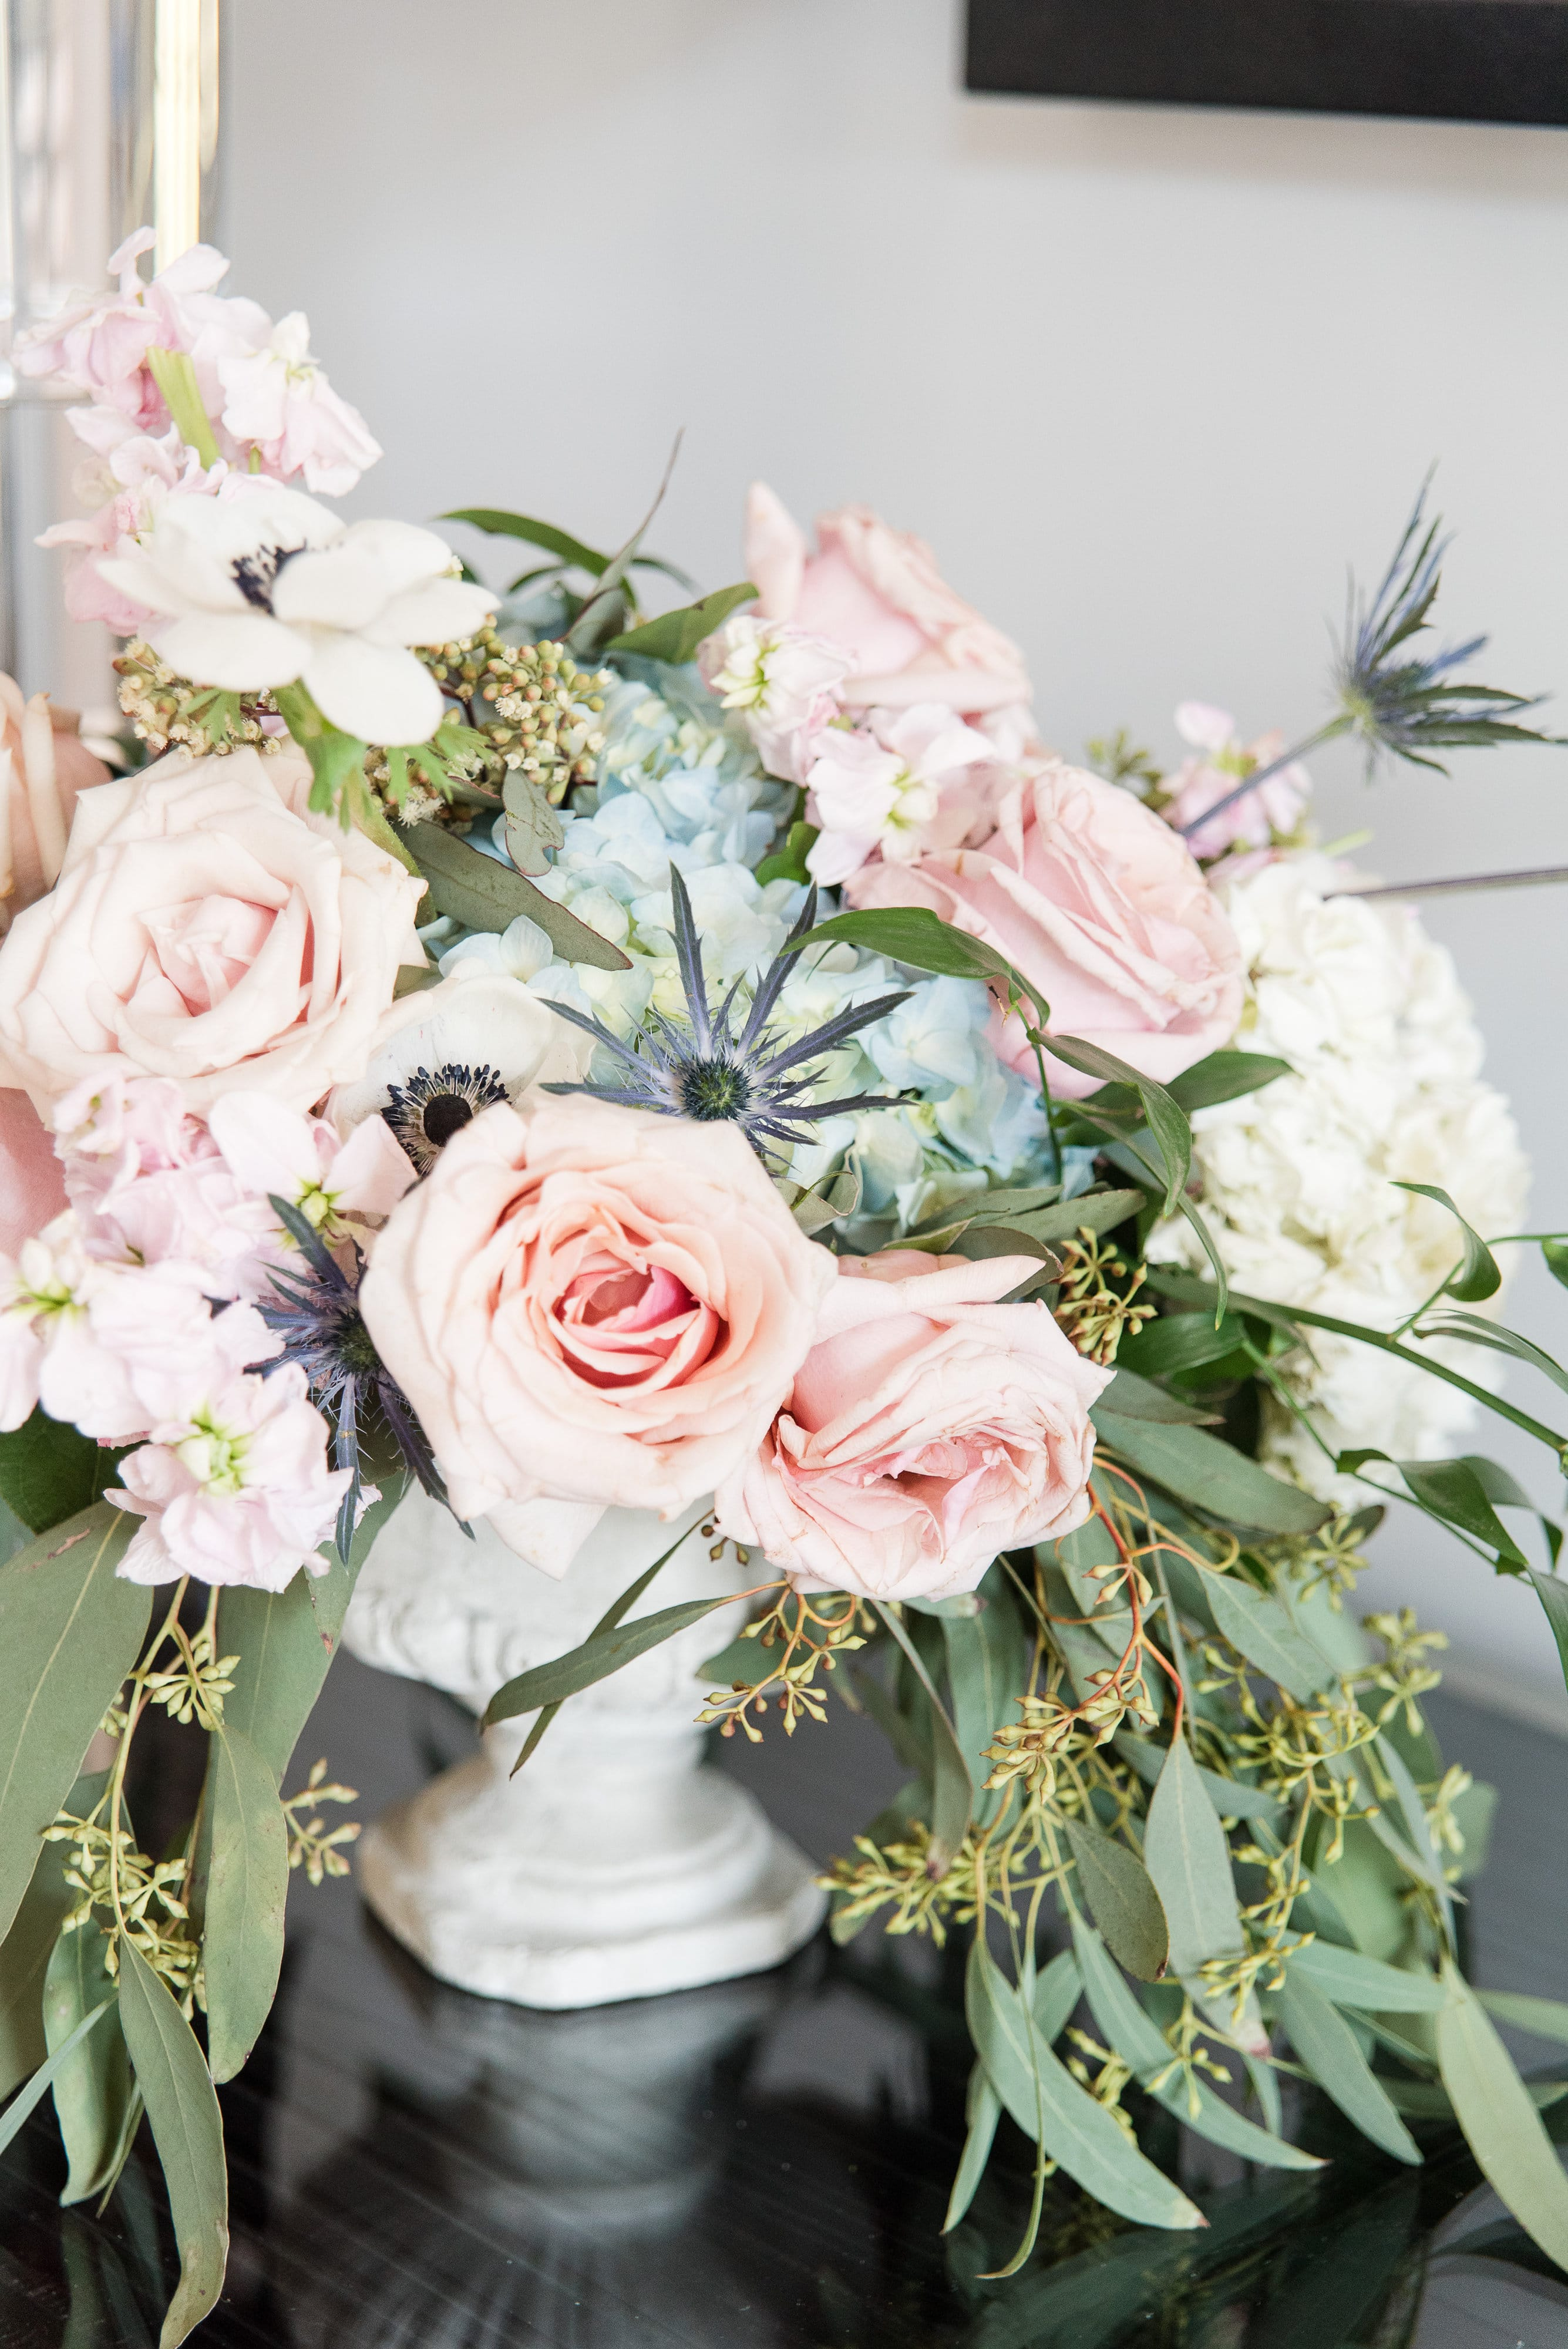 Magnificent Moments Weddings Charlotte Wedding Collective Southern Charm Events (113)